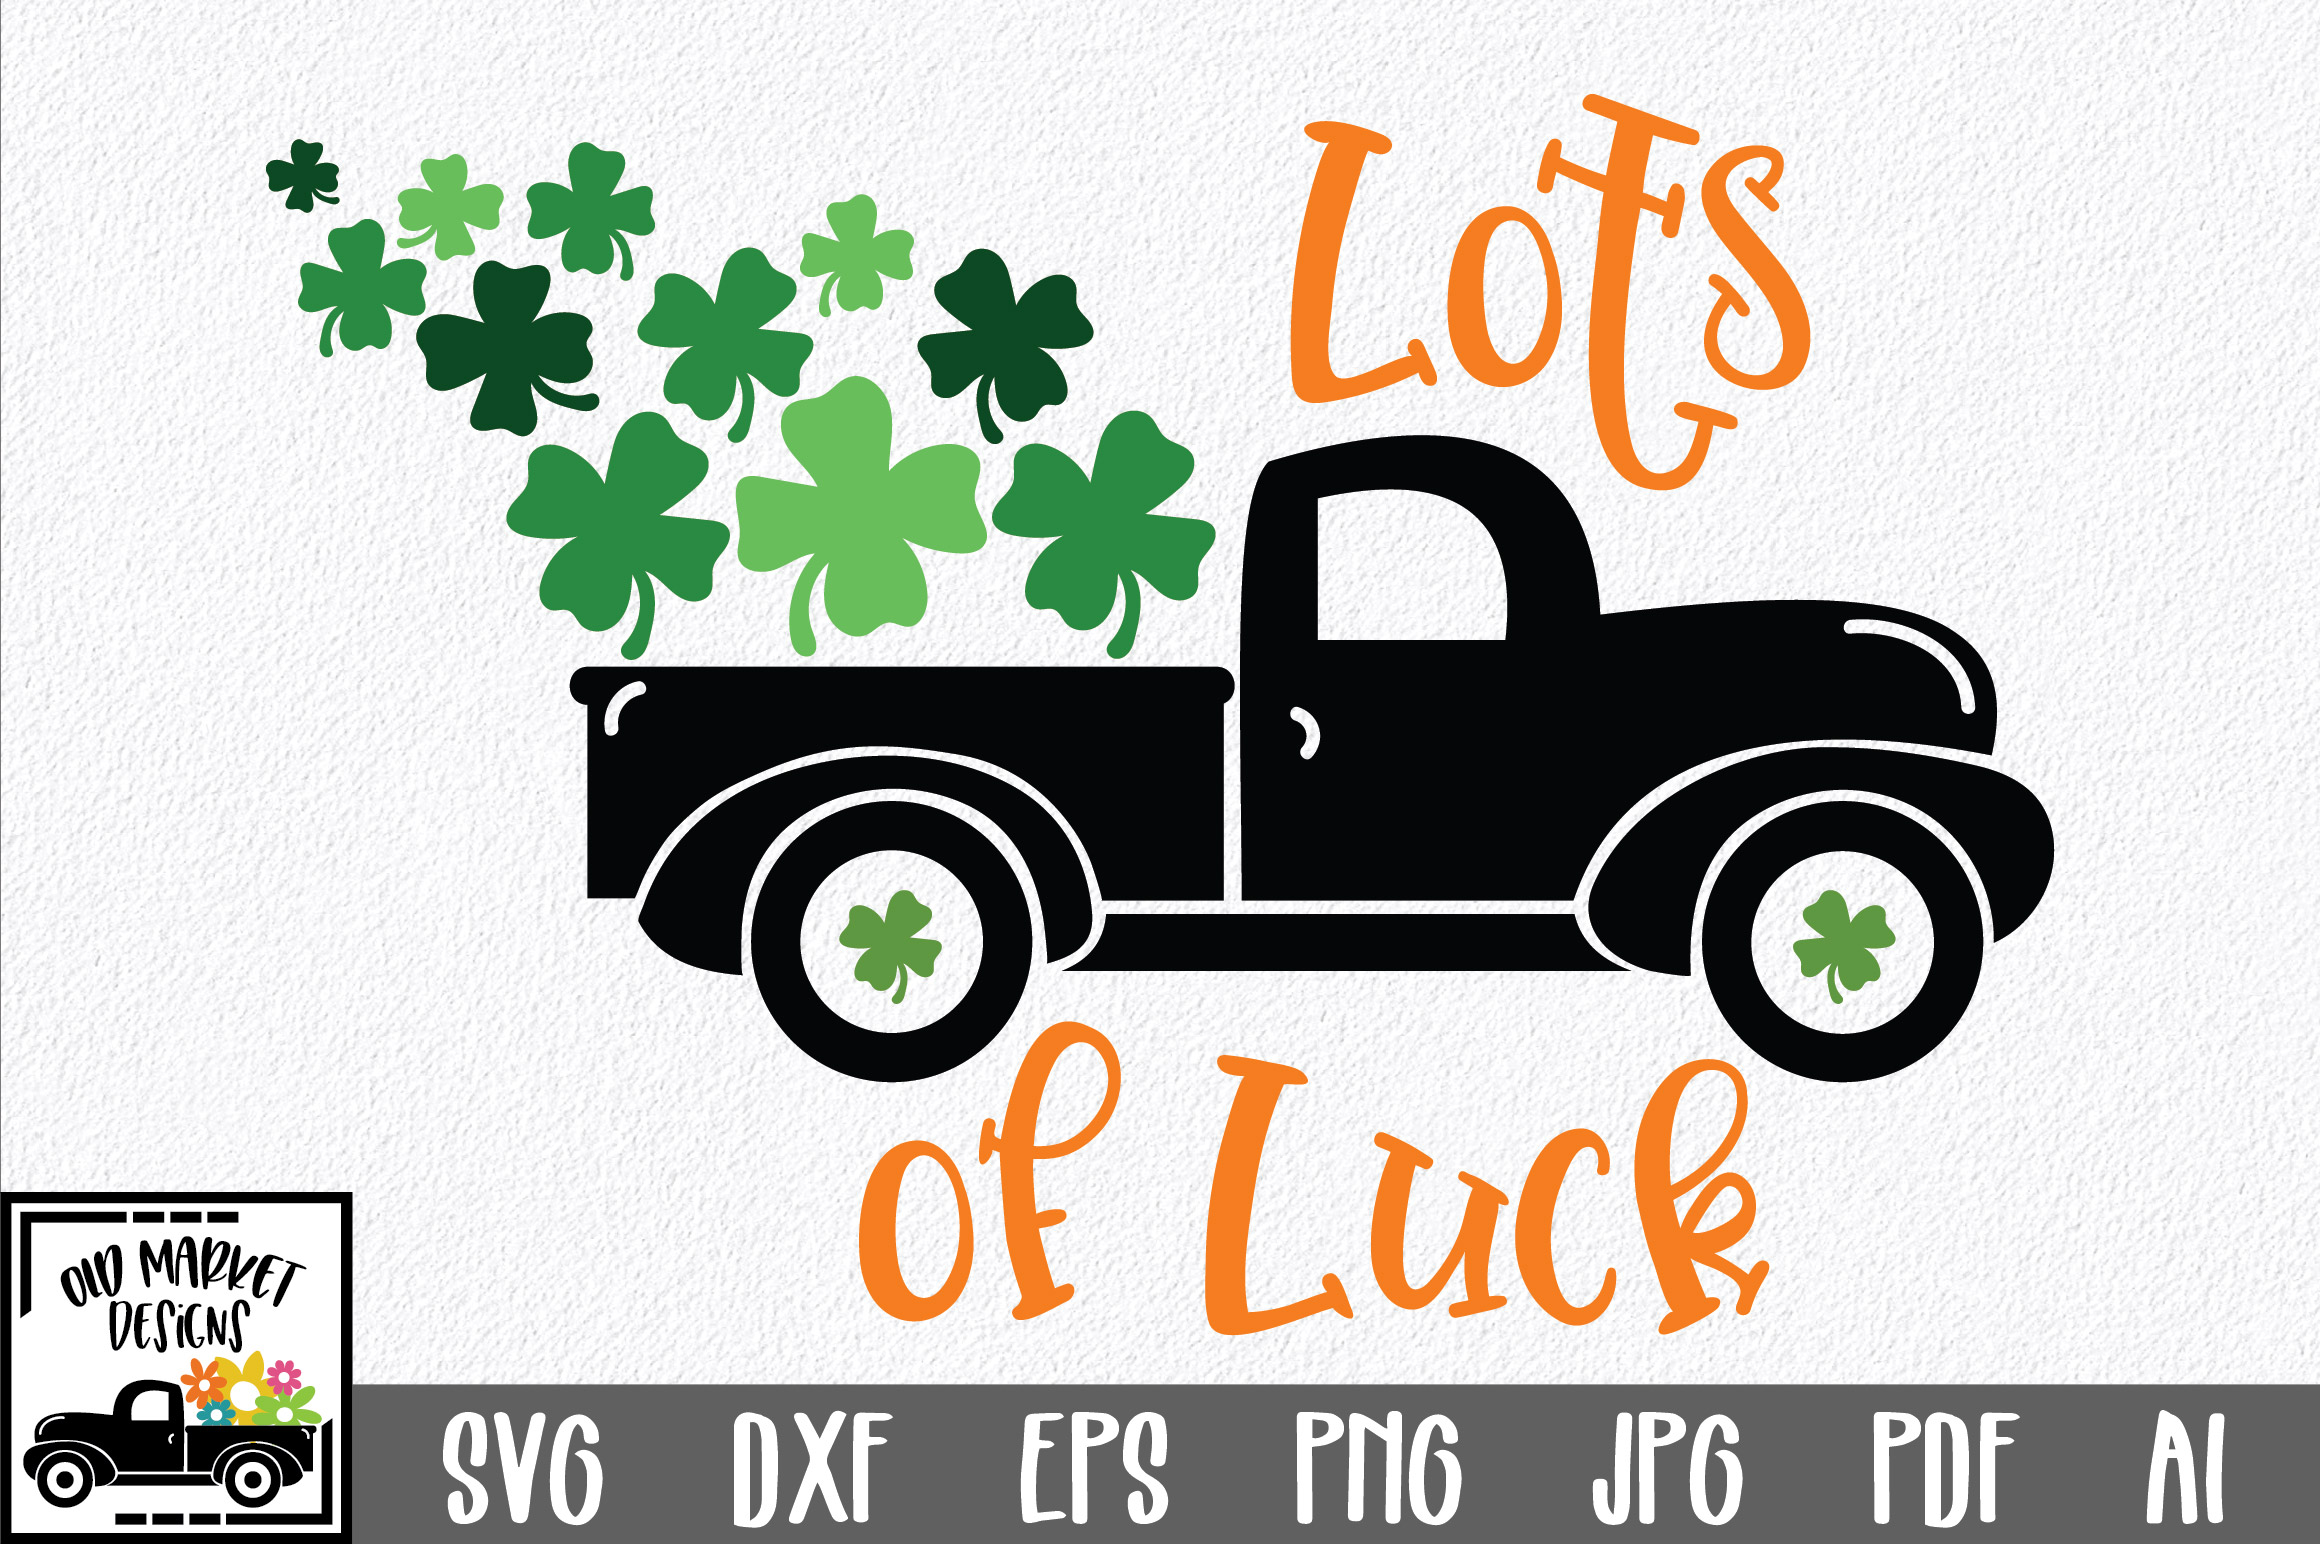 Download Free Lots Of Luck Svg Graphic By Oldmarketdesigns Creative Fabrica for Cricut Explore, Silhouette and other cutting machines.